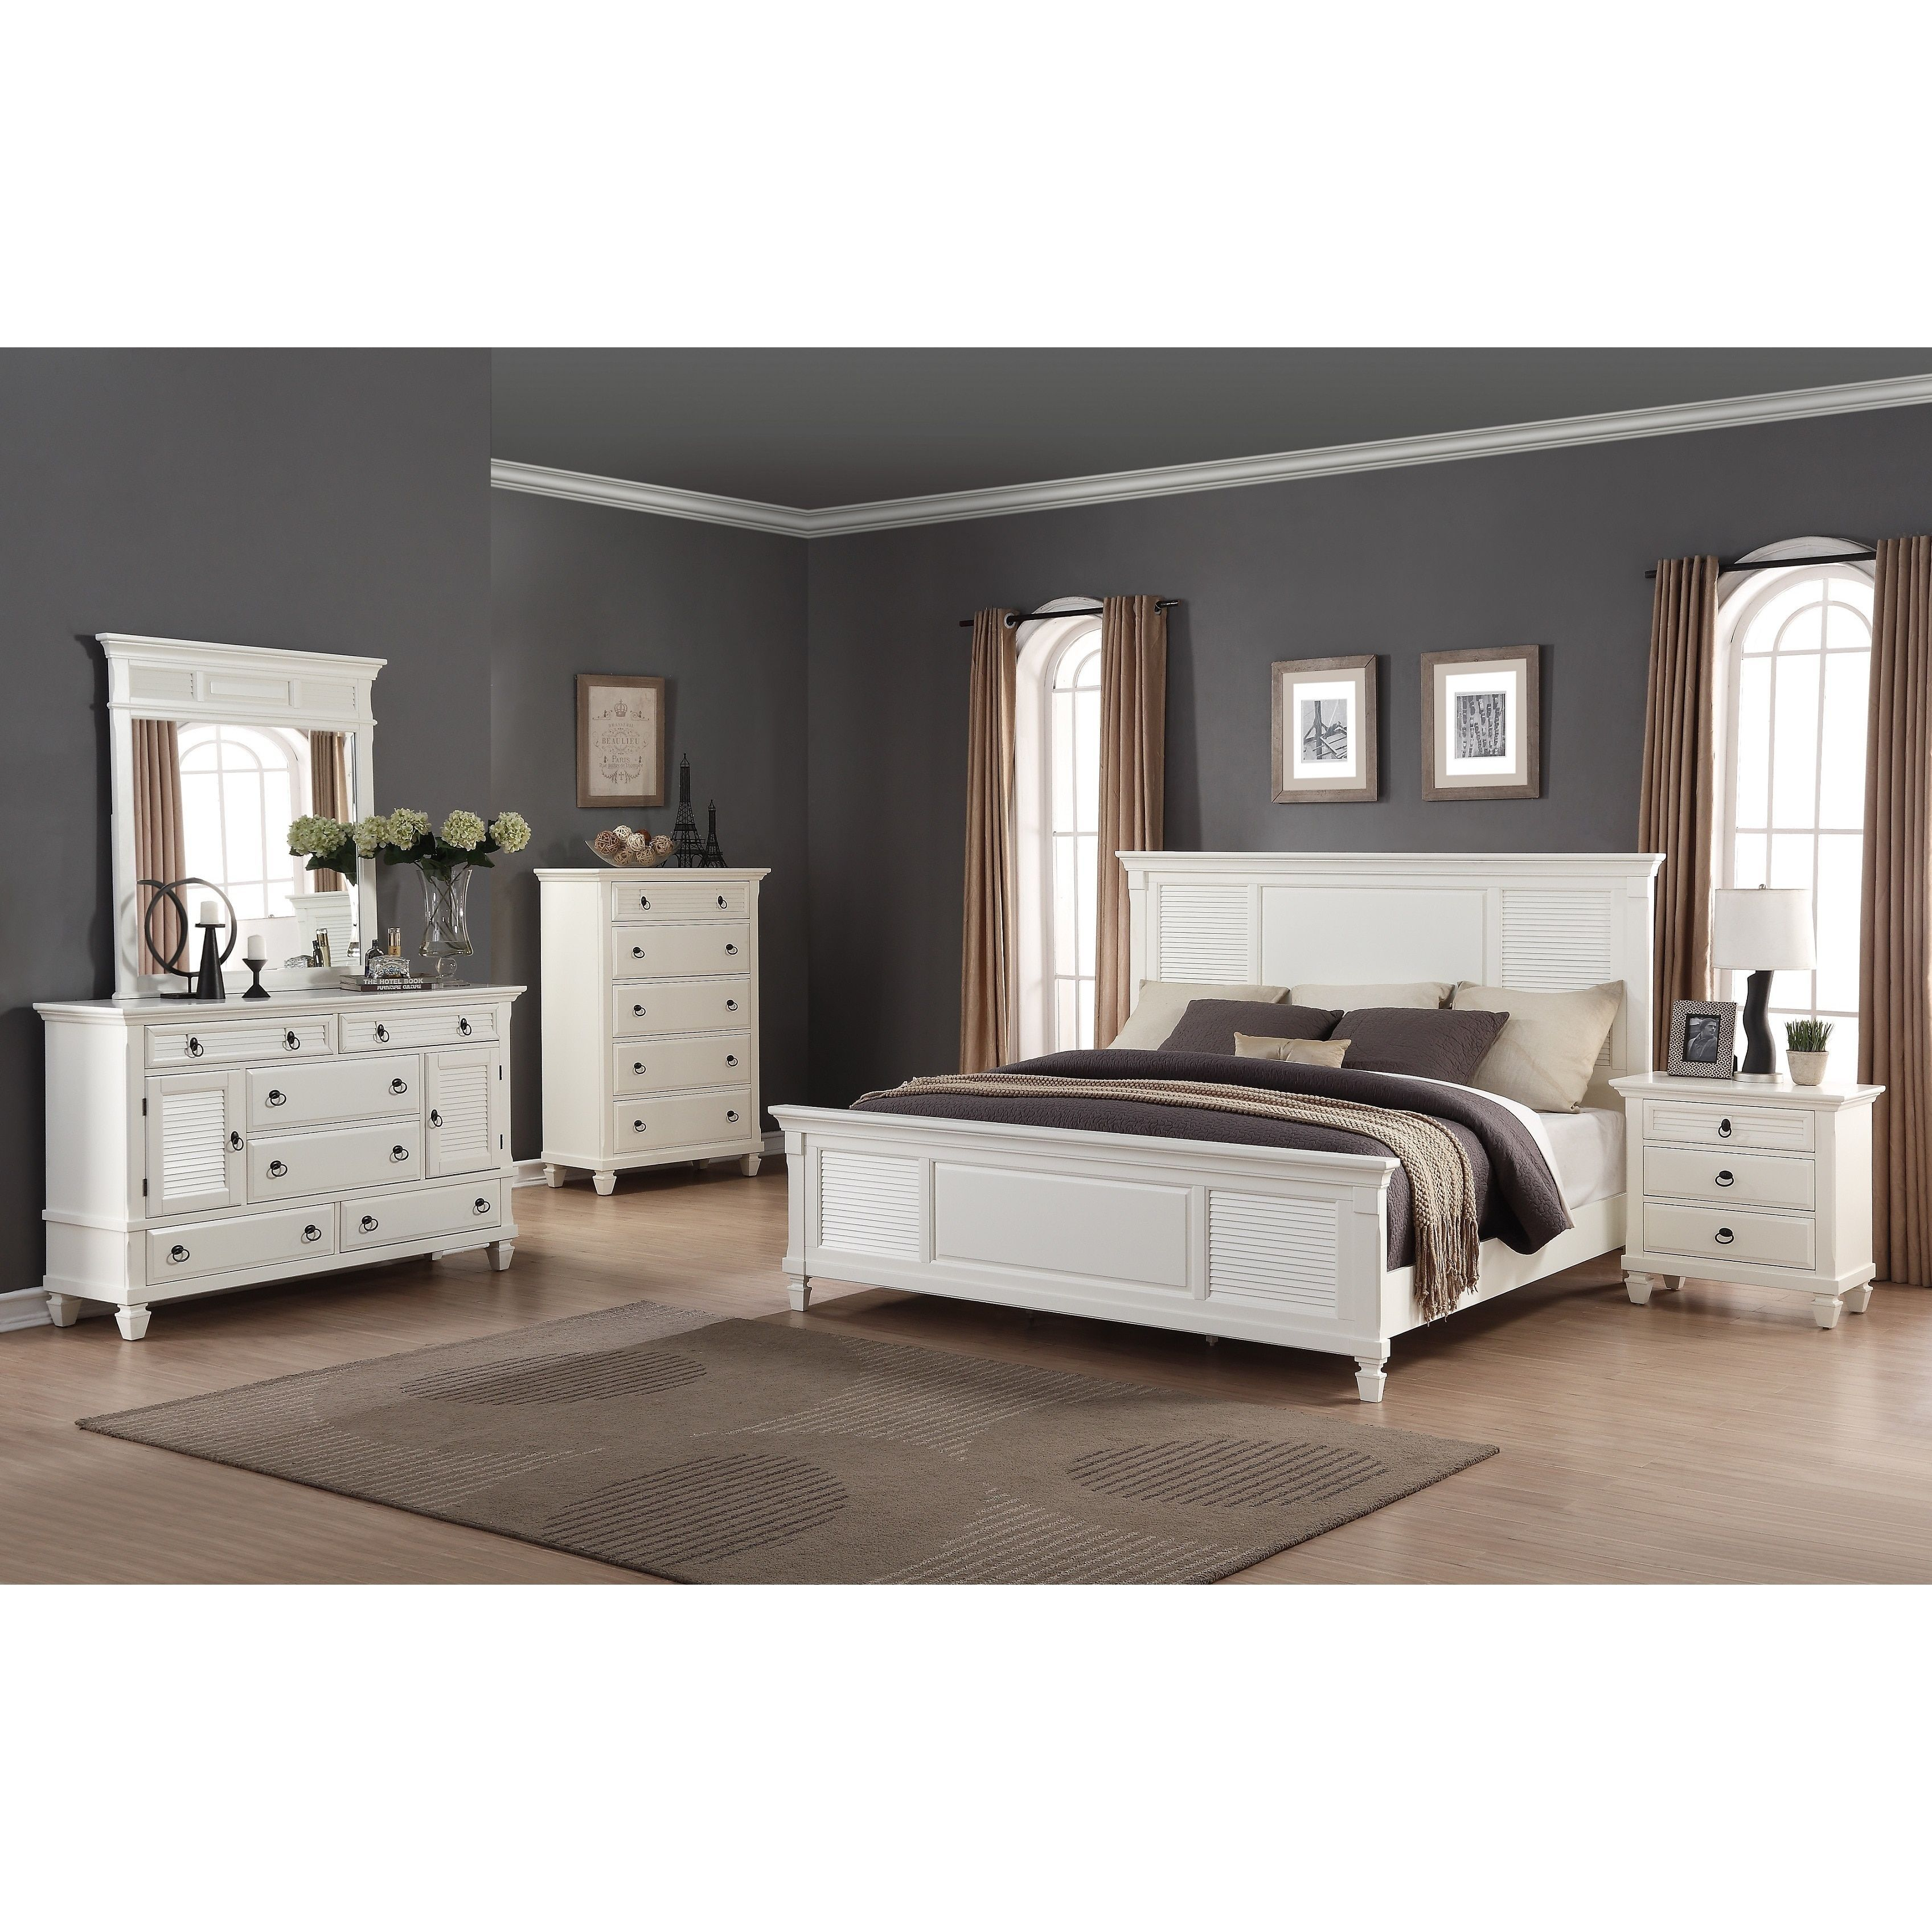 sets of king amazing bedroom dresser bed queen set contemporary drawer hemnes ikea black tall side size